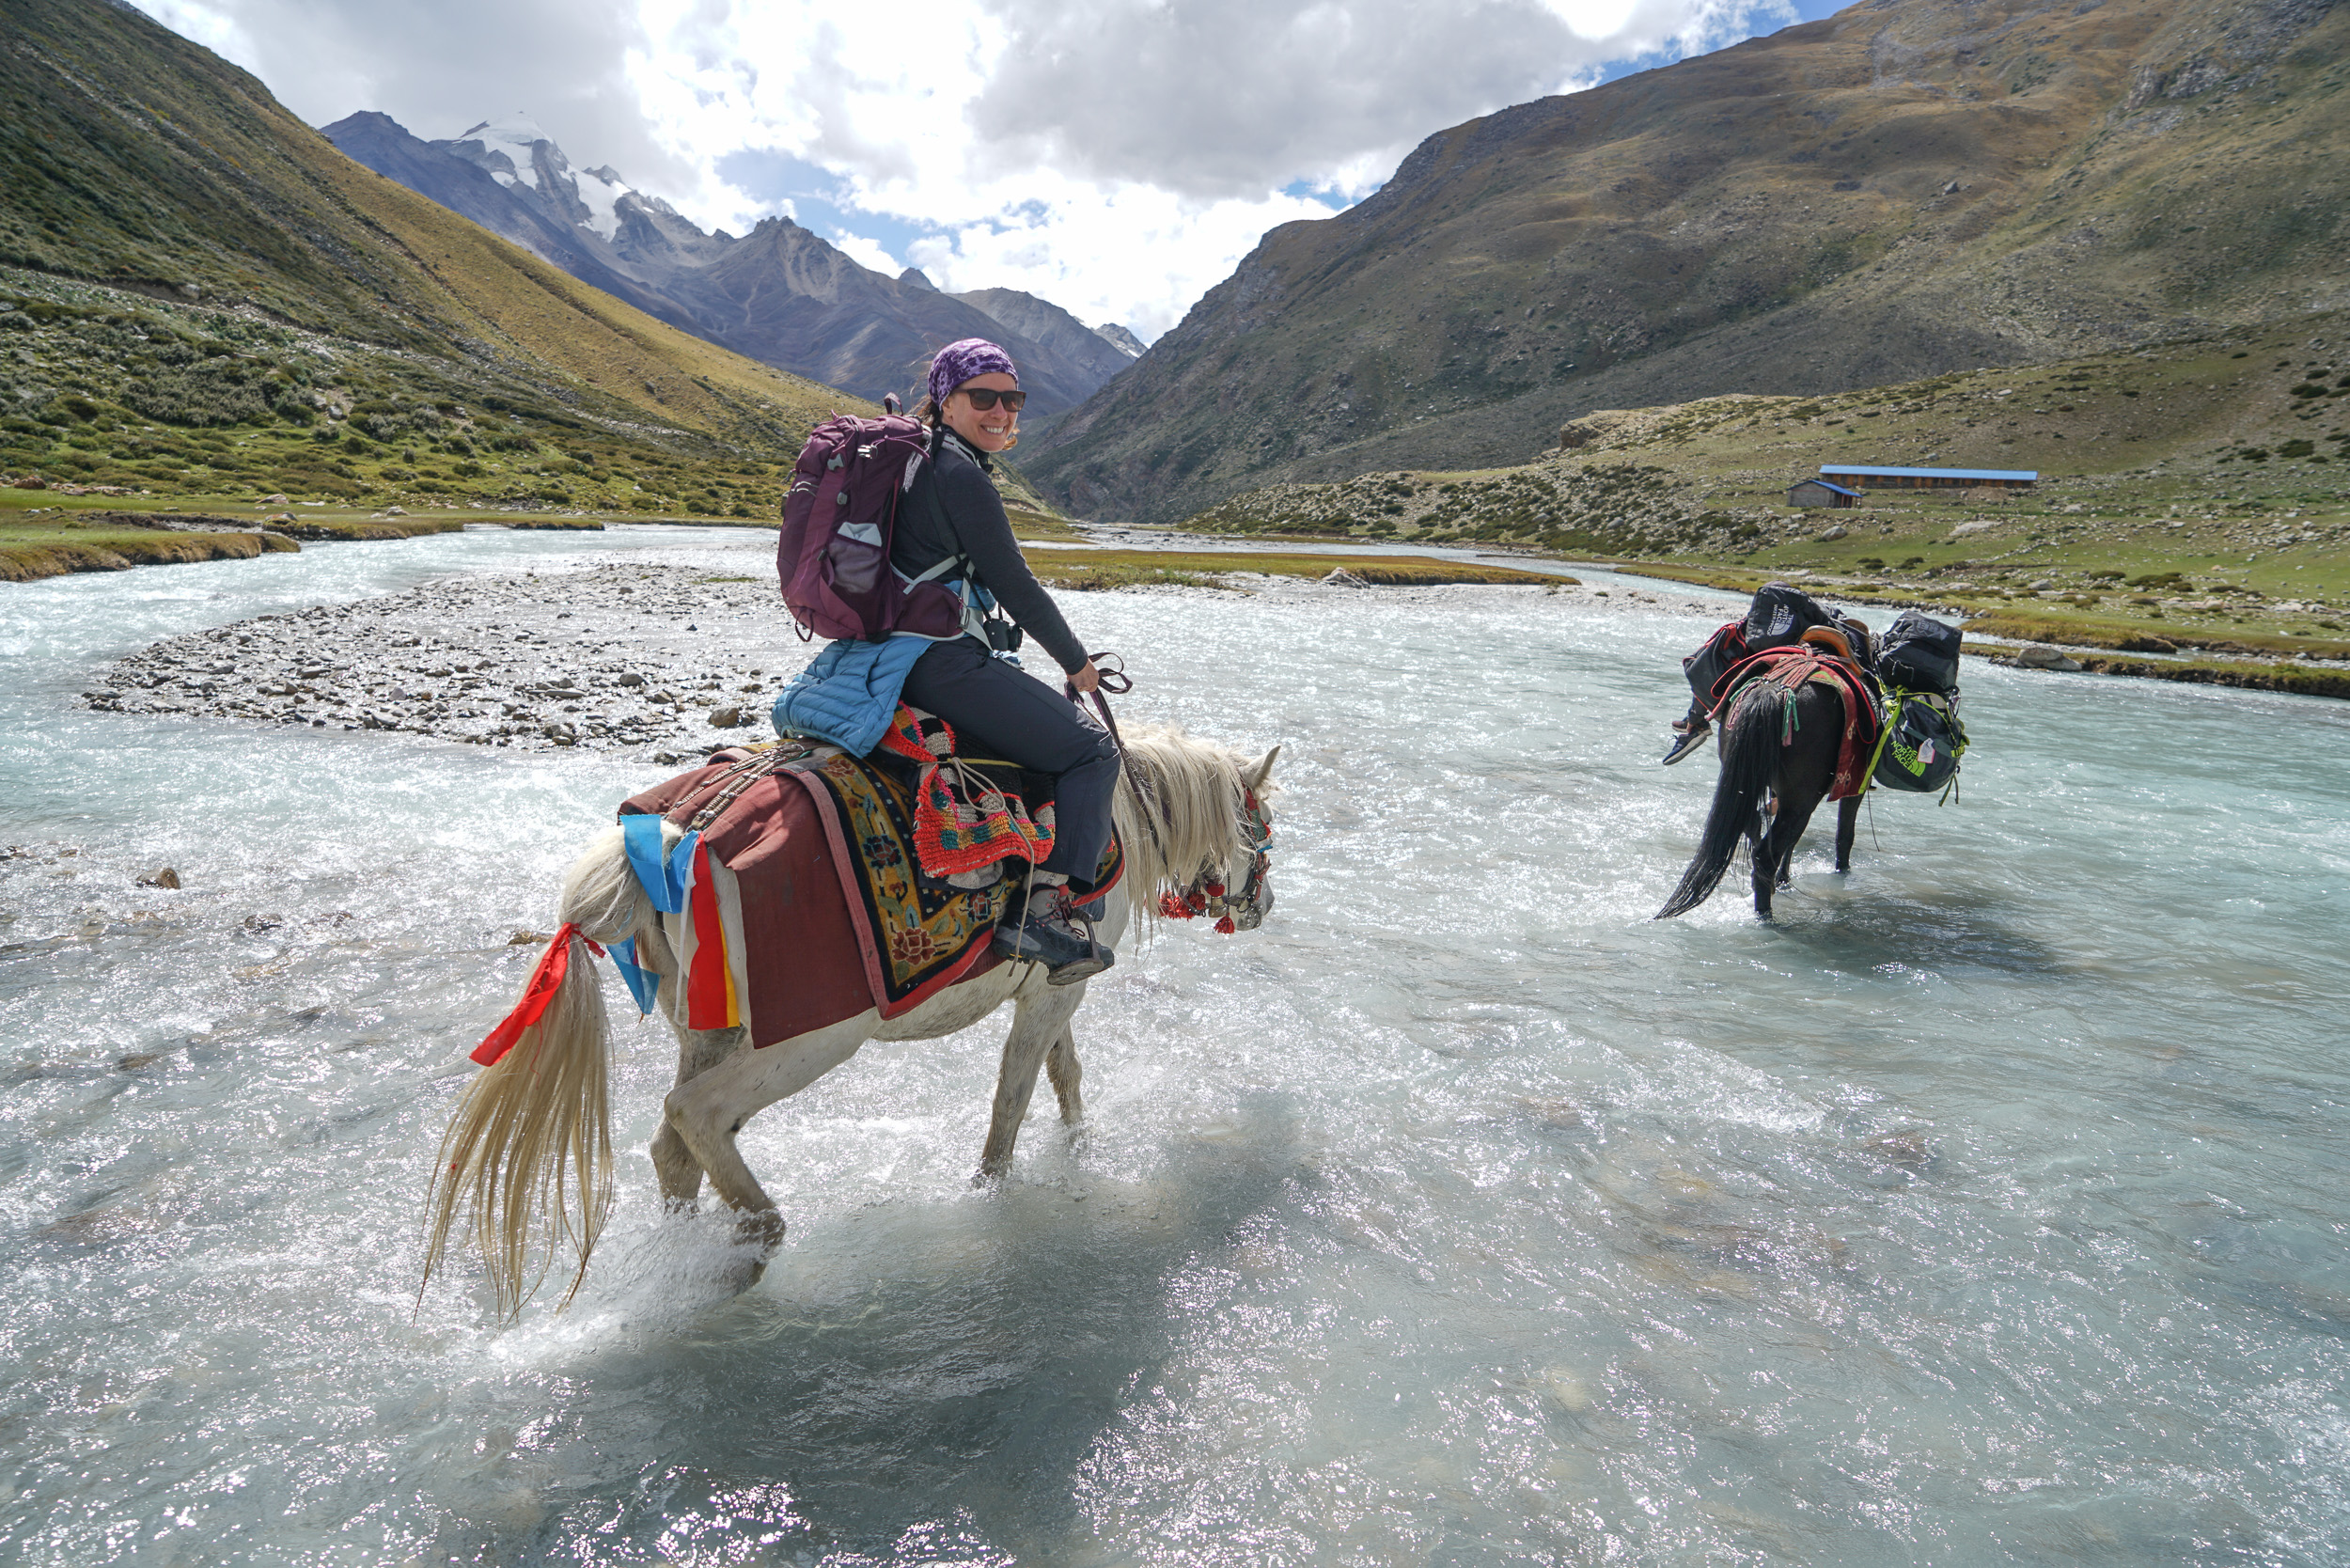 The horses certainly made the trek easier. Up and down trails and crossing rivers of ice cold glacier melt